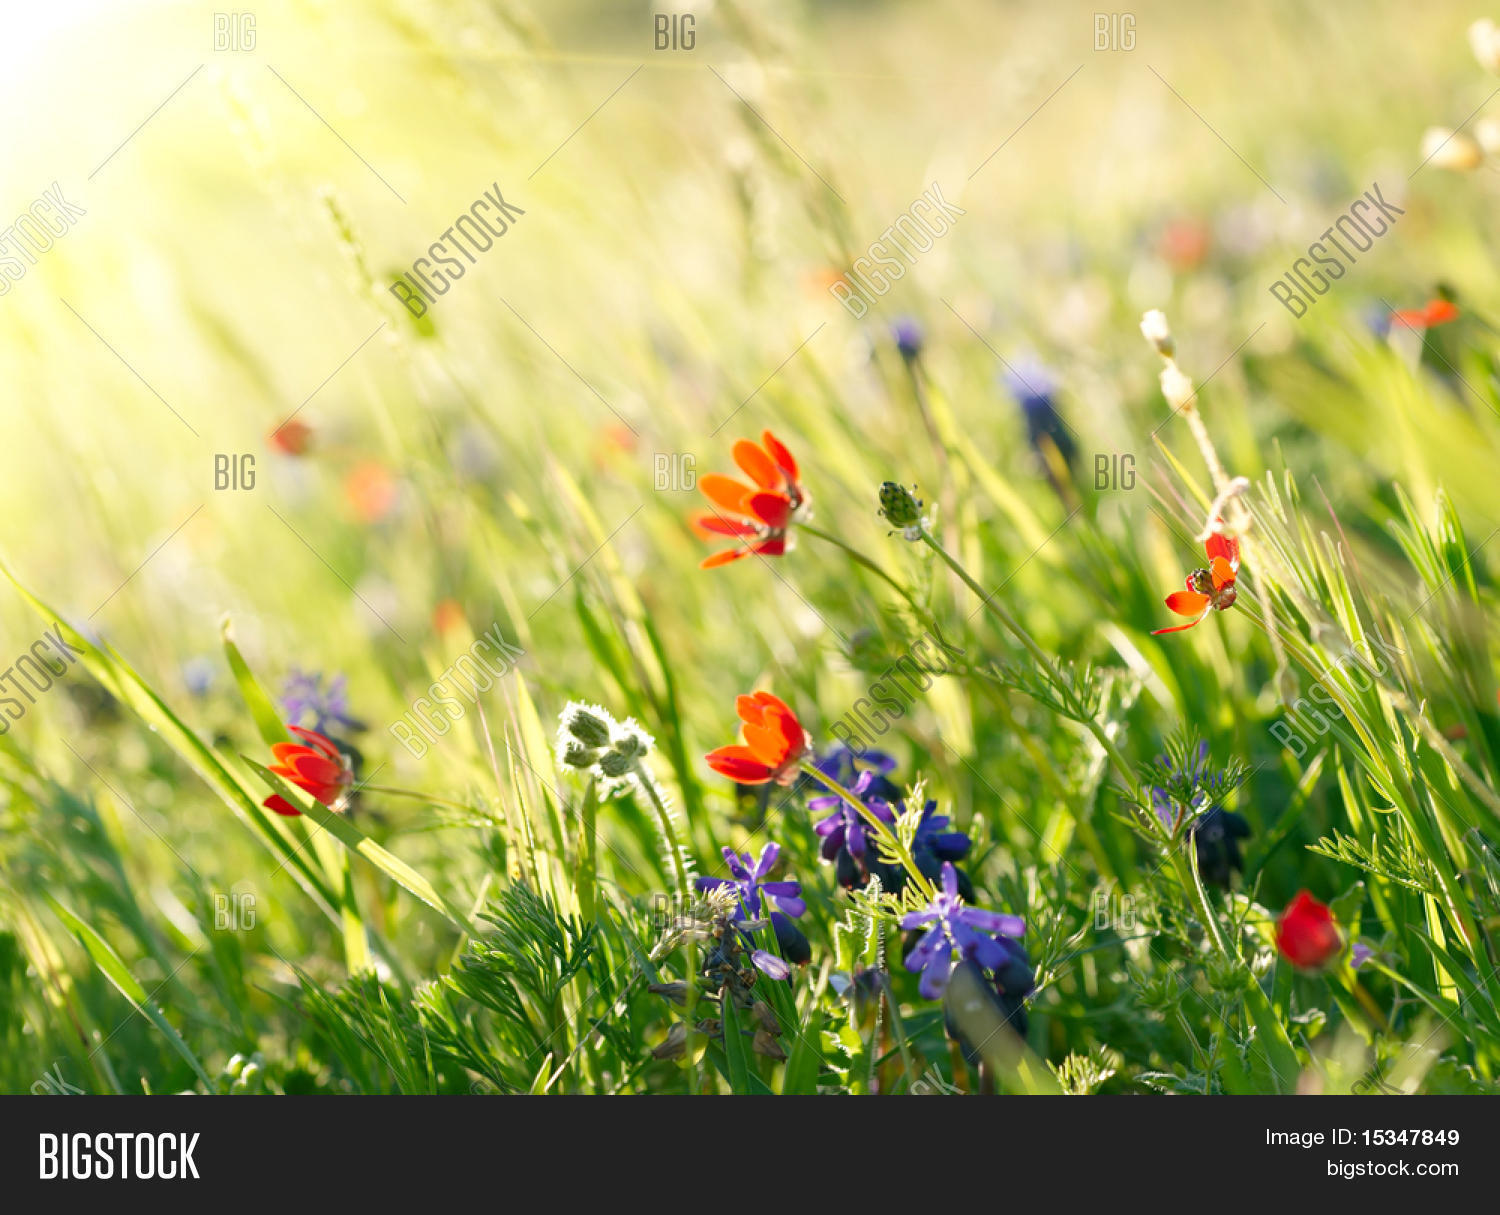 Red Field Flowers Image Photo Free Trial Bigstock